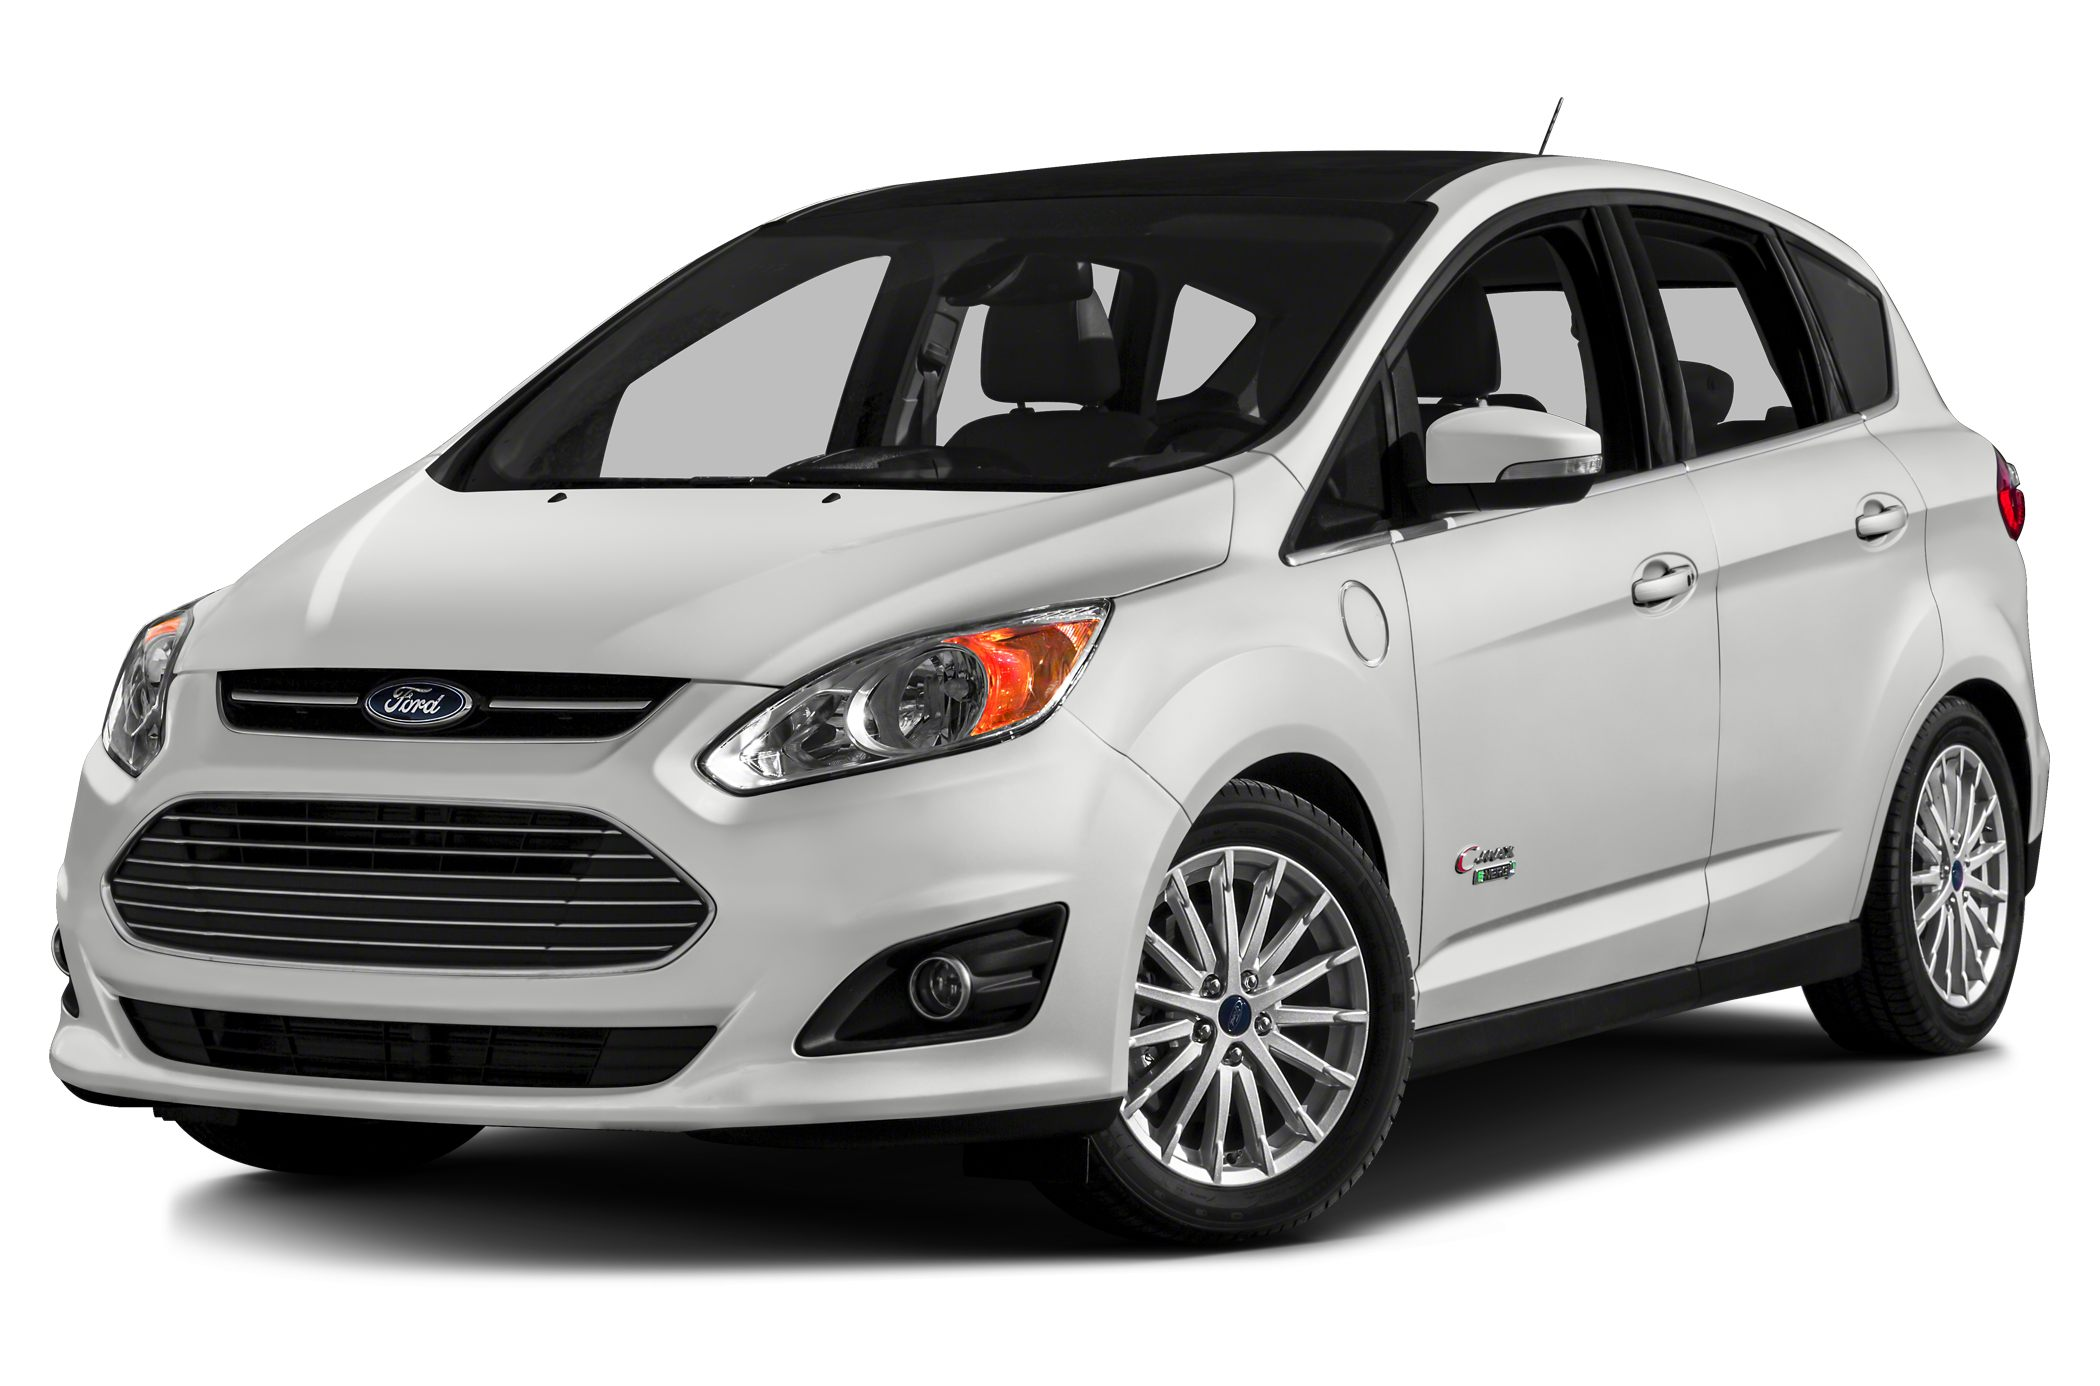 2016 Ford C-Max Energi SEL HYBRID LEATHER HEATED FRONT SEATS BLUETOOTH REAR PARKING AID MP3 P